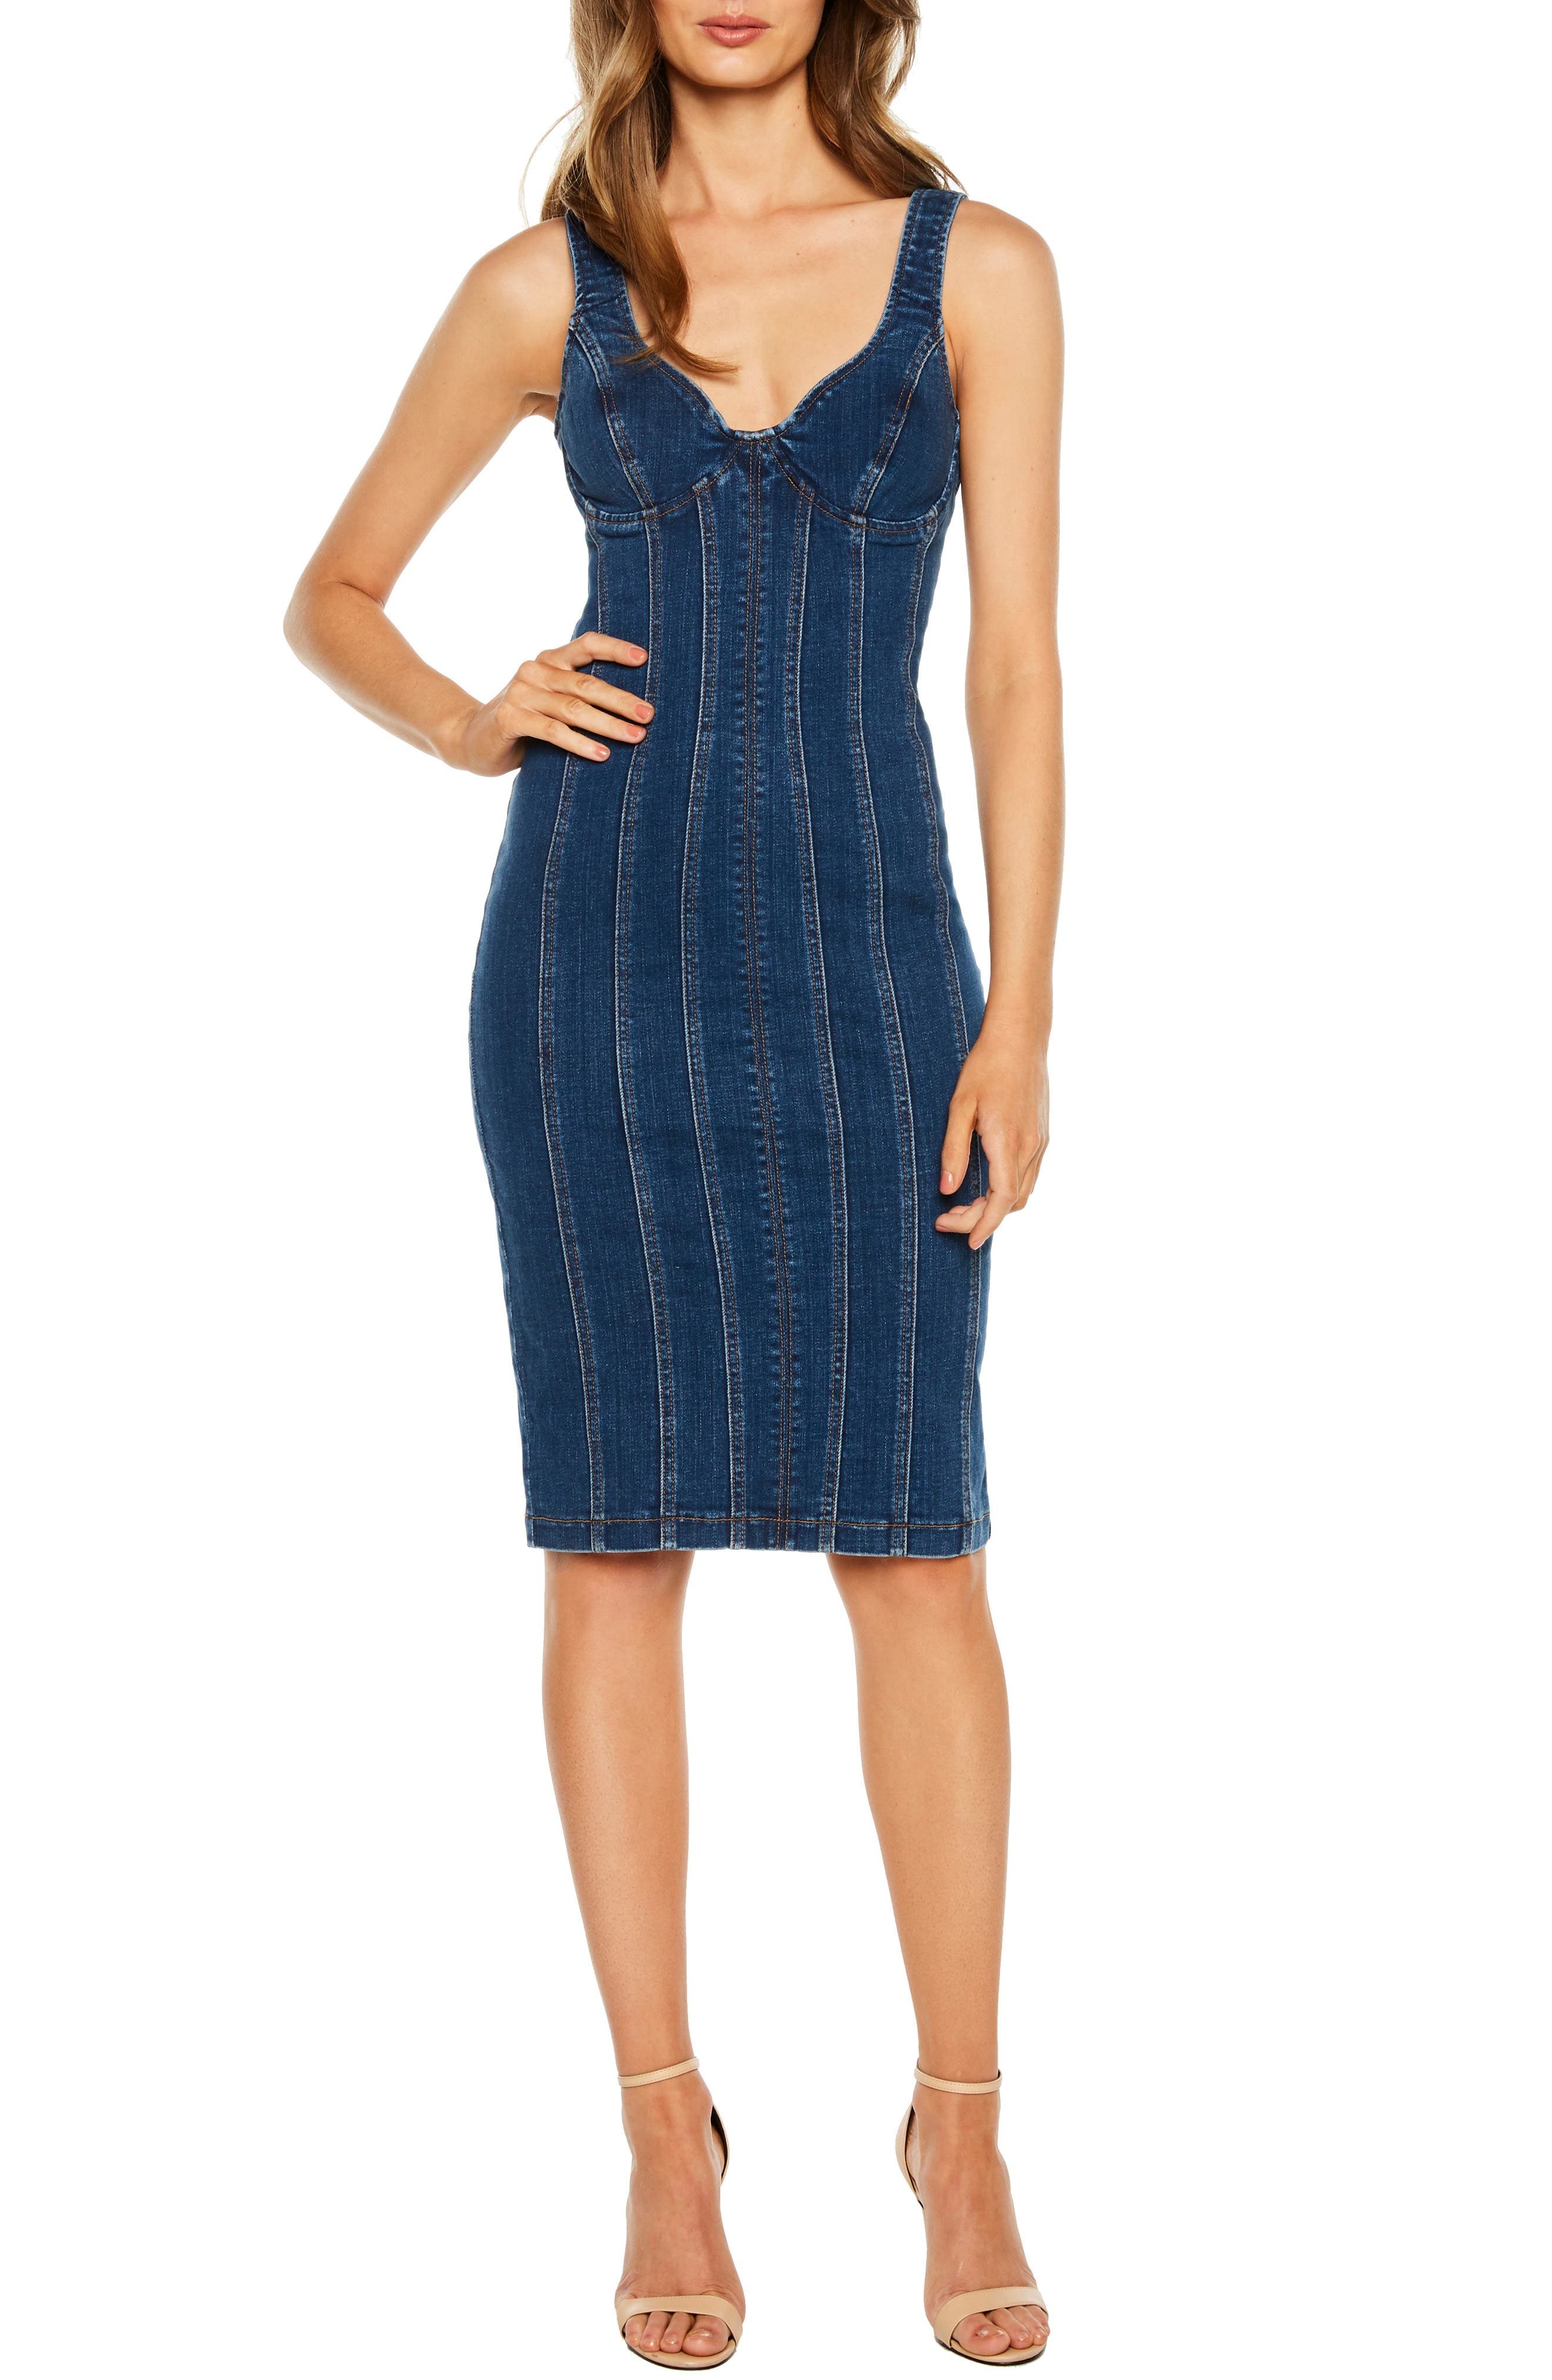 Bardot Miami Denim Dress